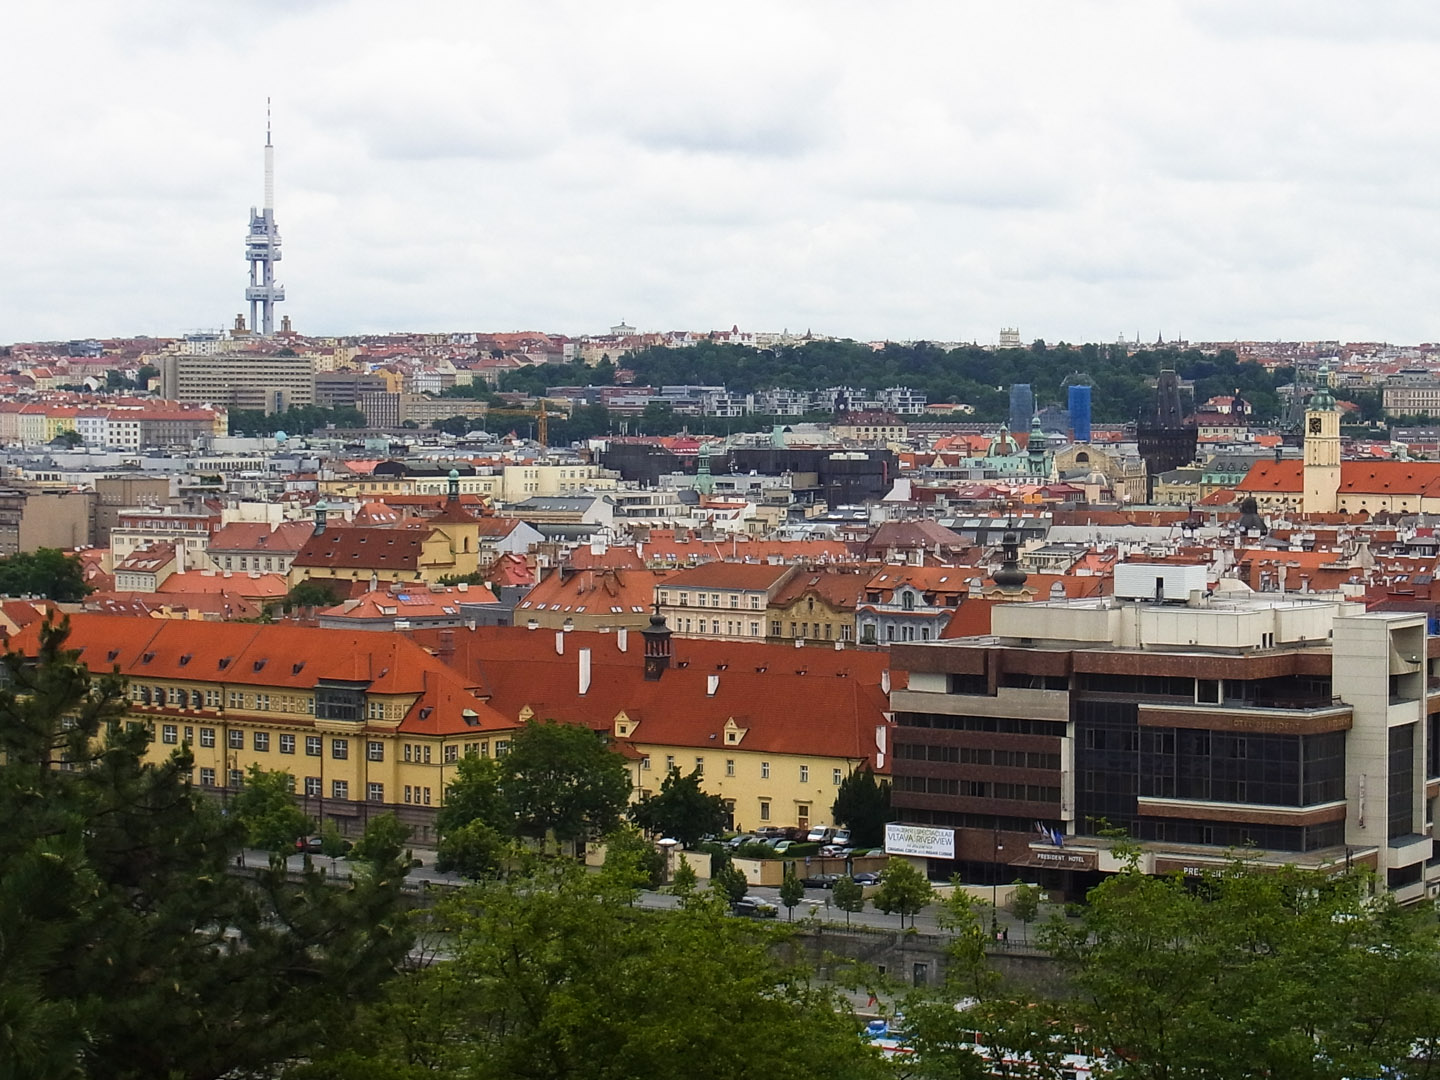 From Letná Hill